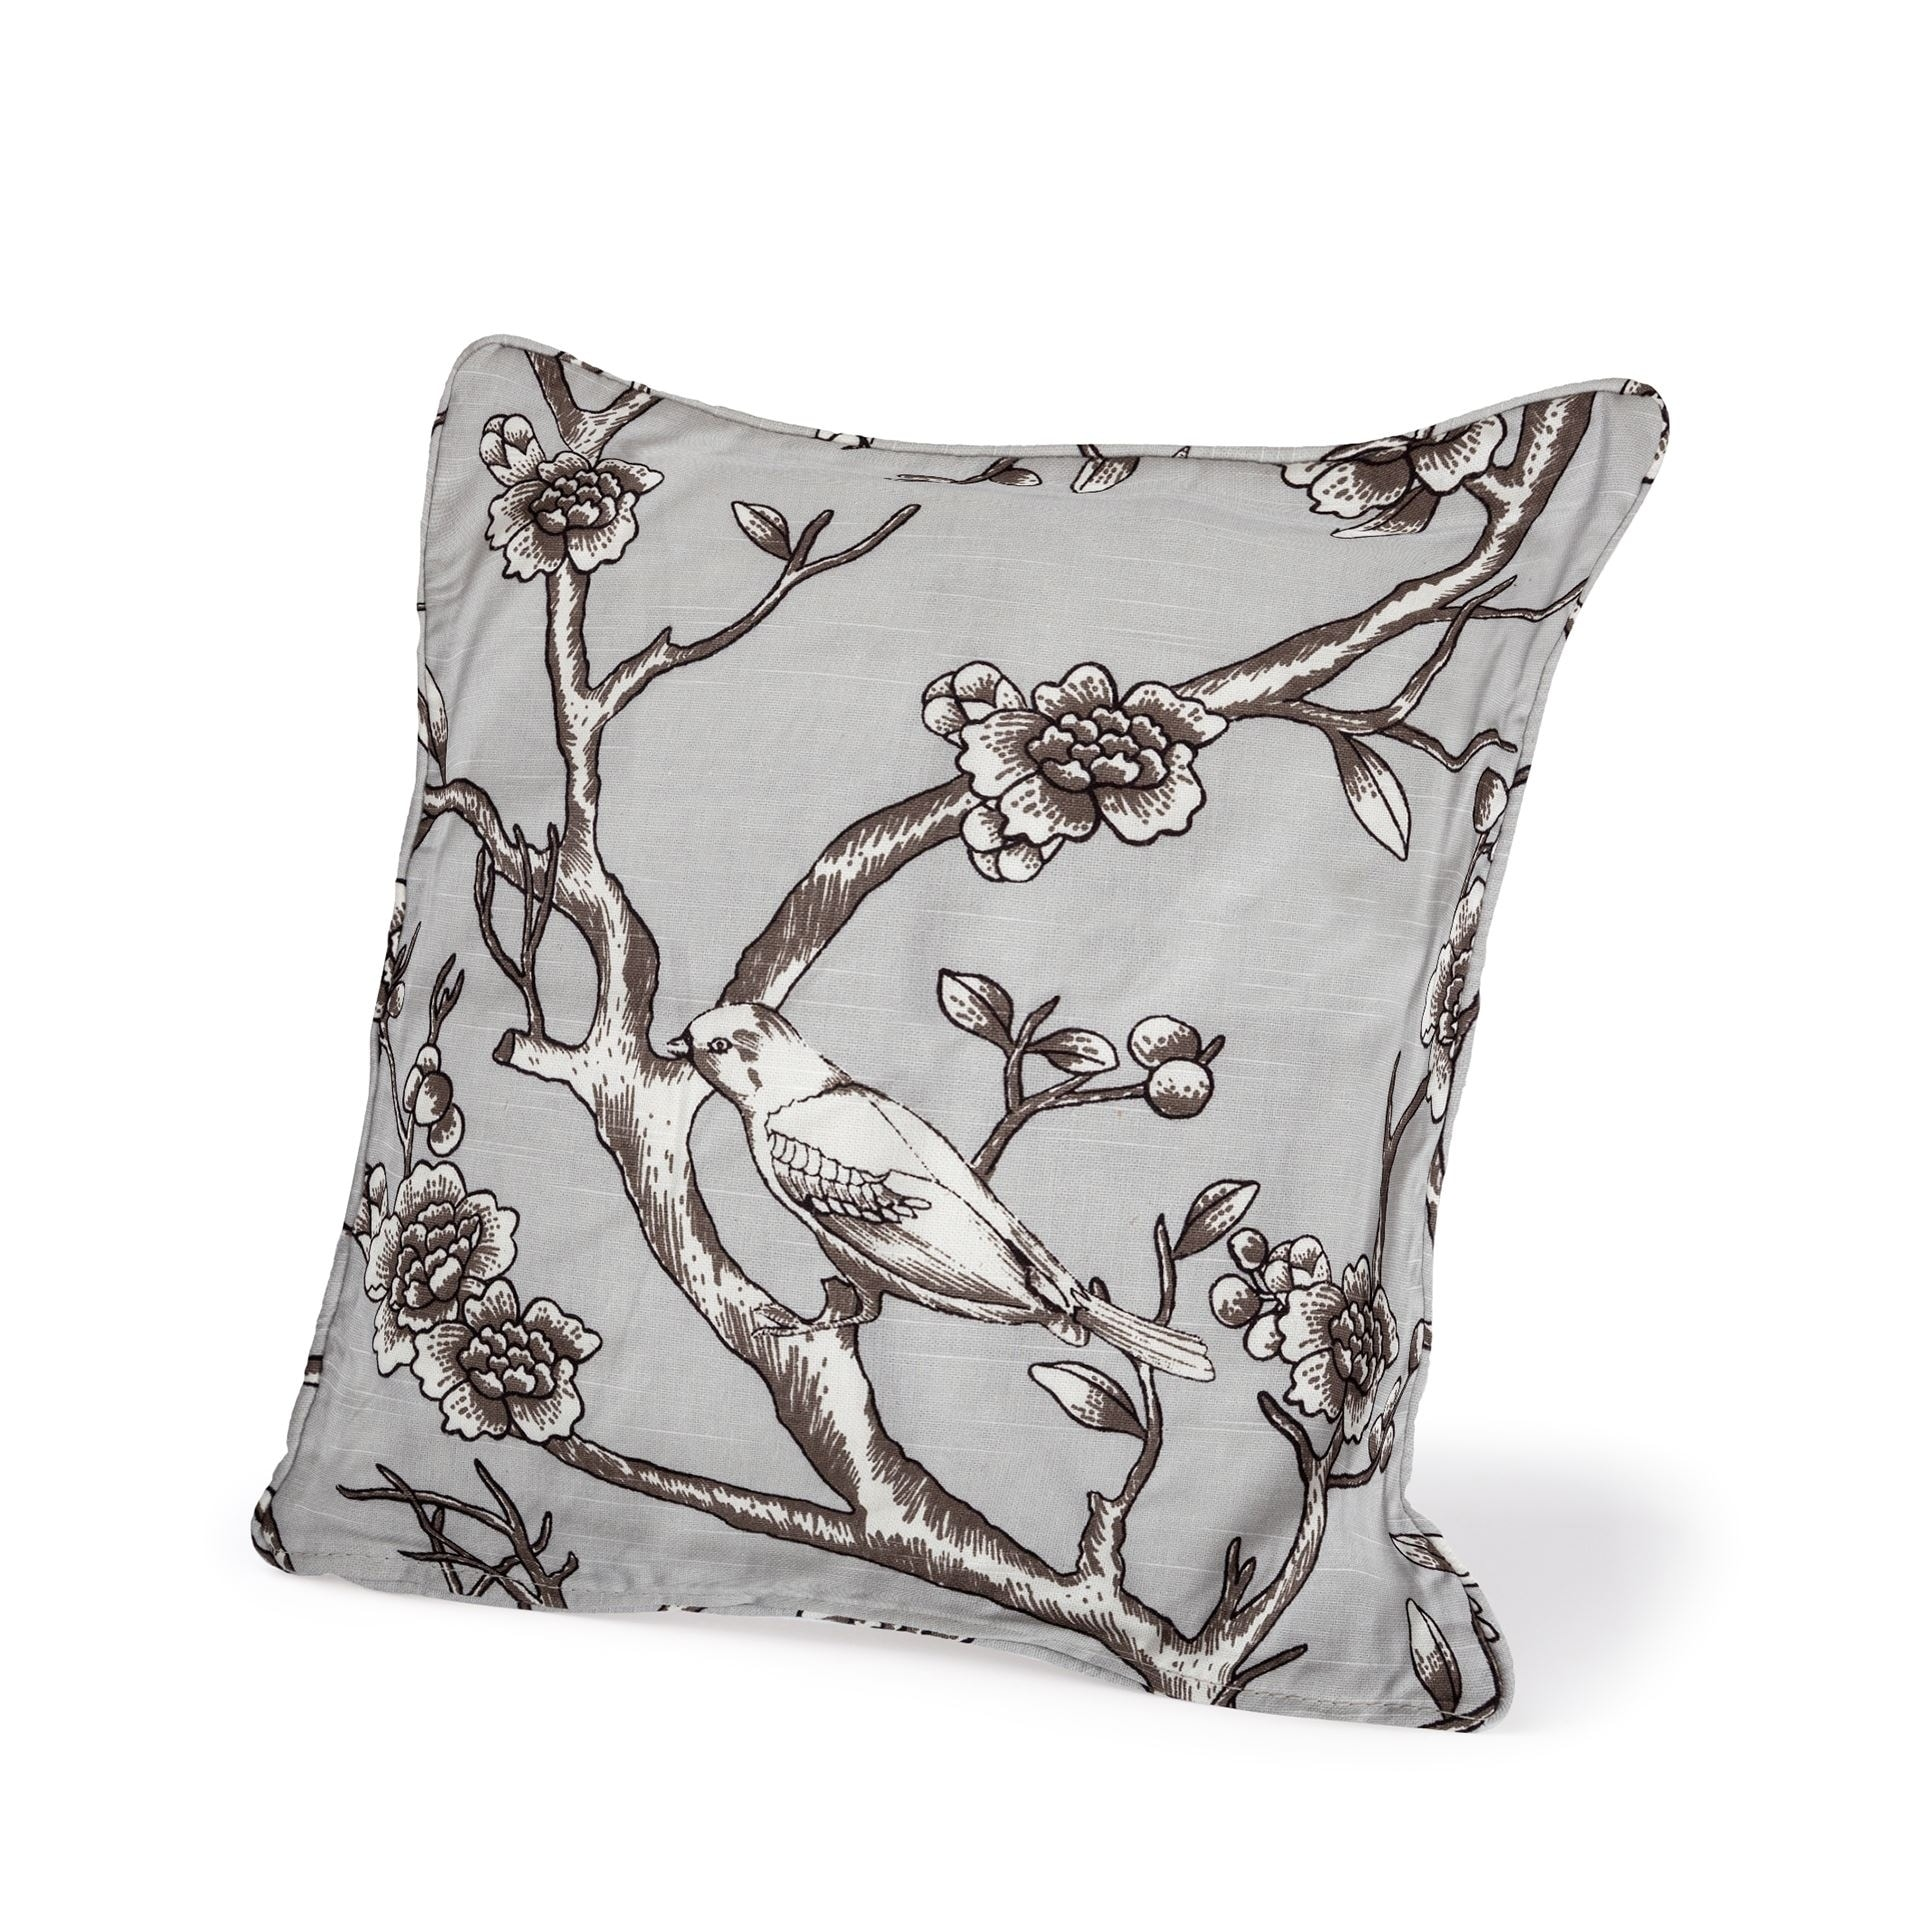 Mercana Aster II 20 x 20 (cover only) Decorative Pillow